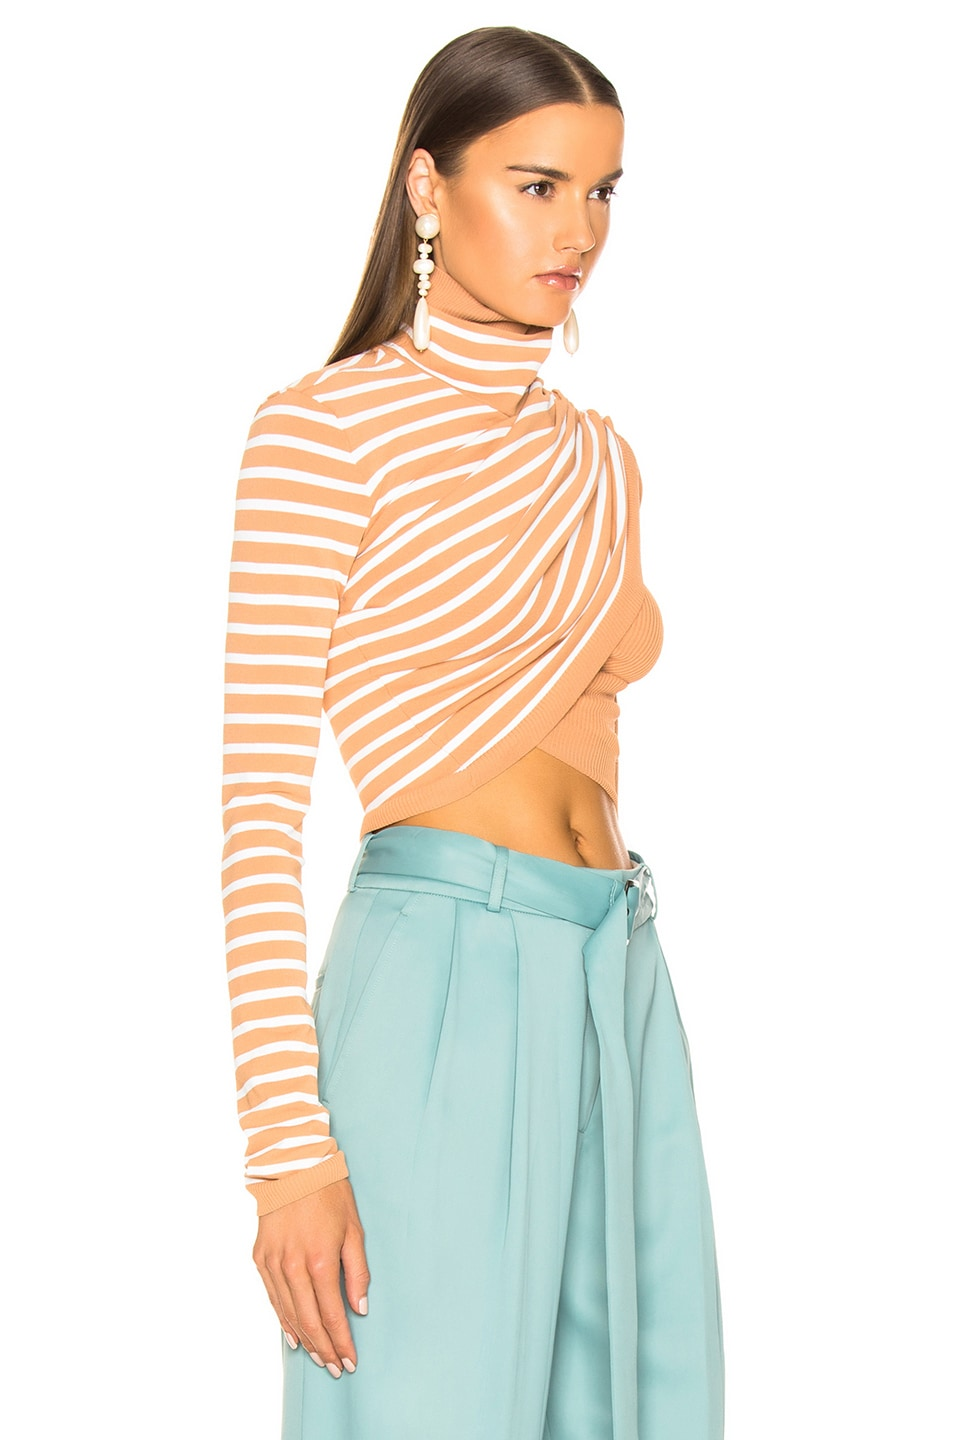 Image 2 of Sies Marjan Jenn Wrap Crop Turtleneck Sweater in Cinnamon & Salt Stripe